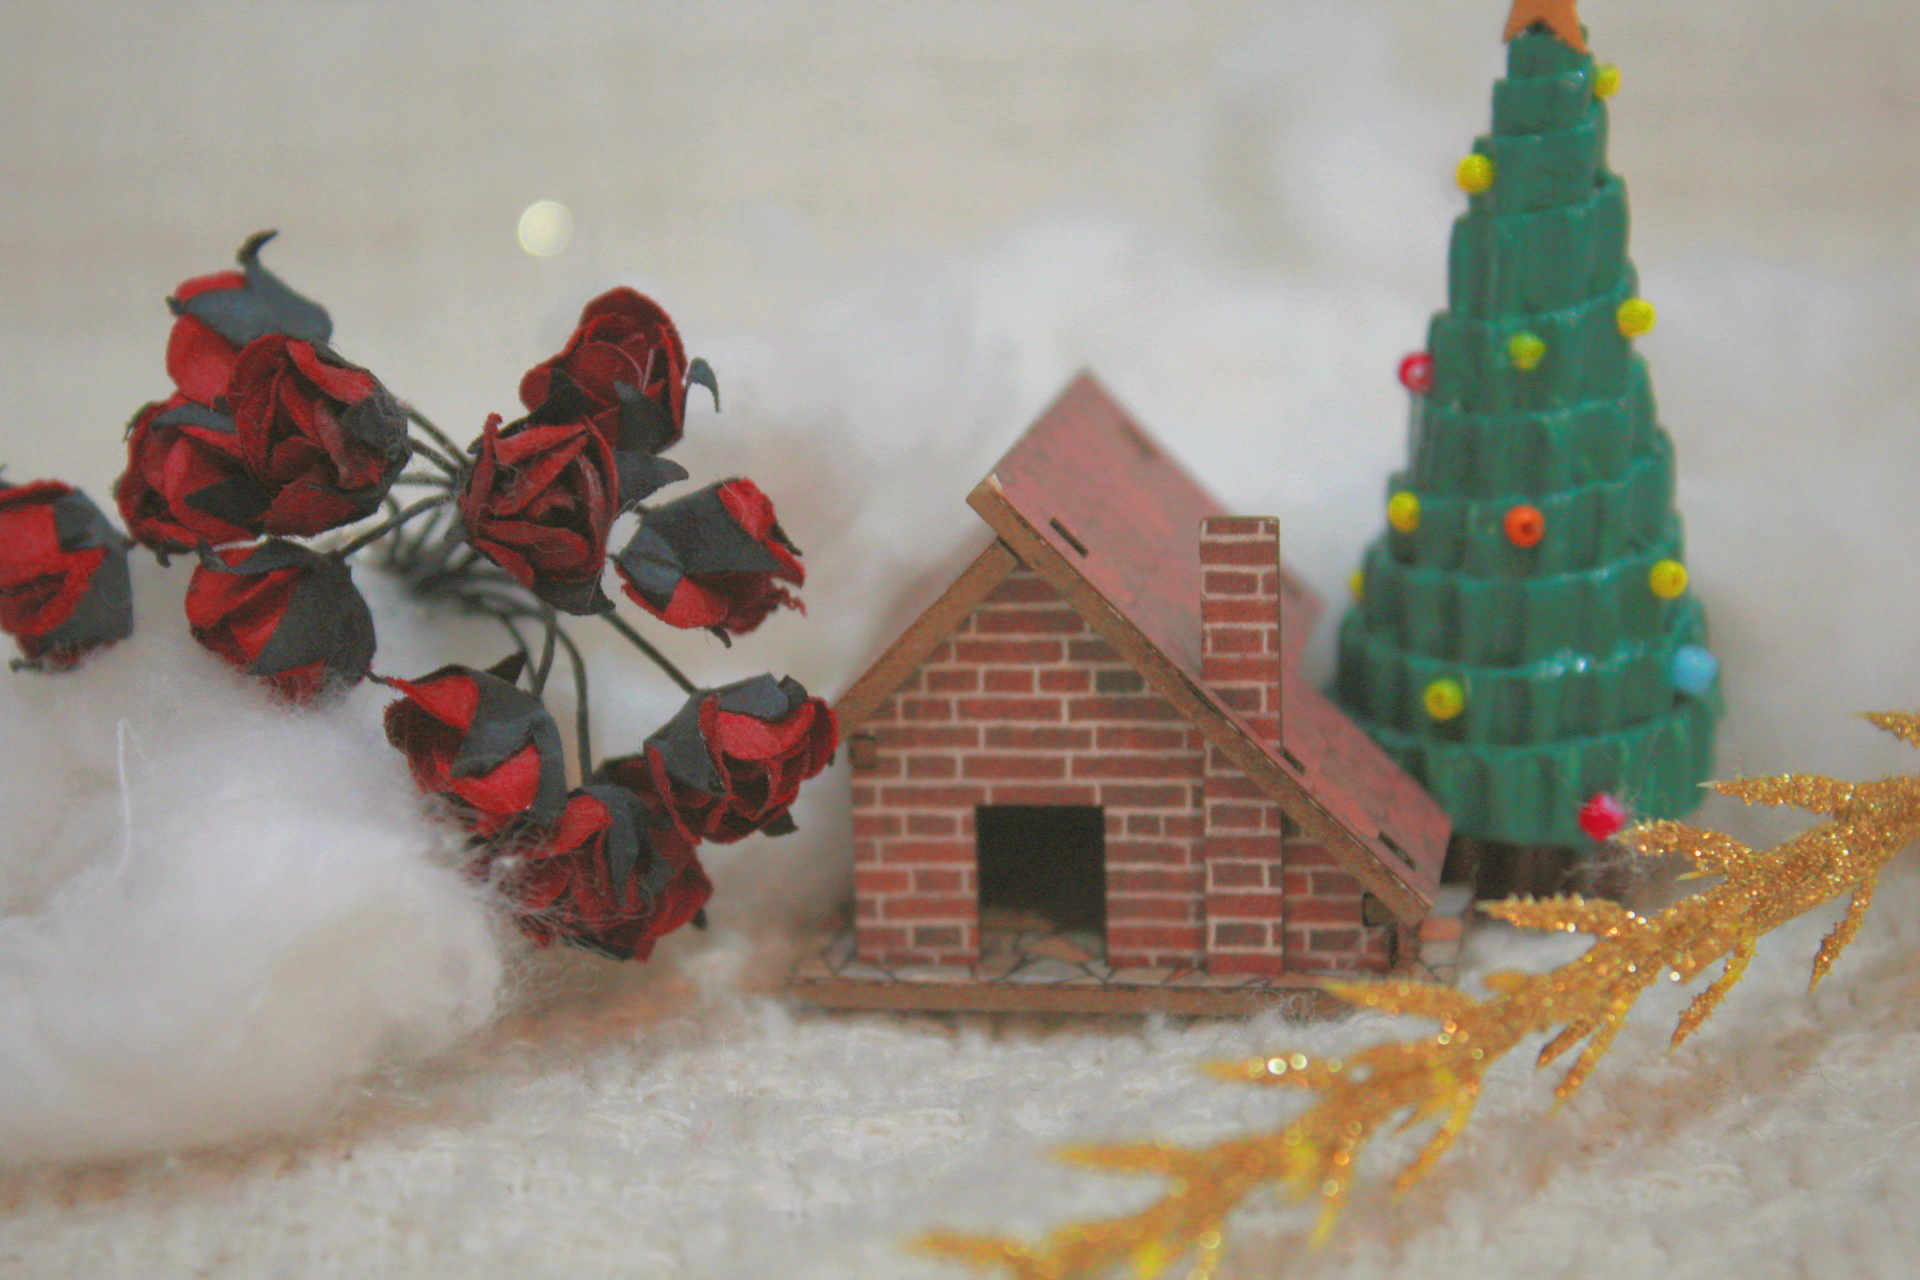 a small minatory house with red flowers and Christmas tree. snows around it.